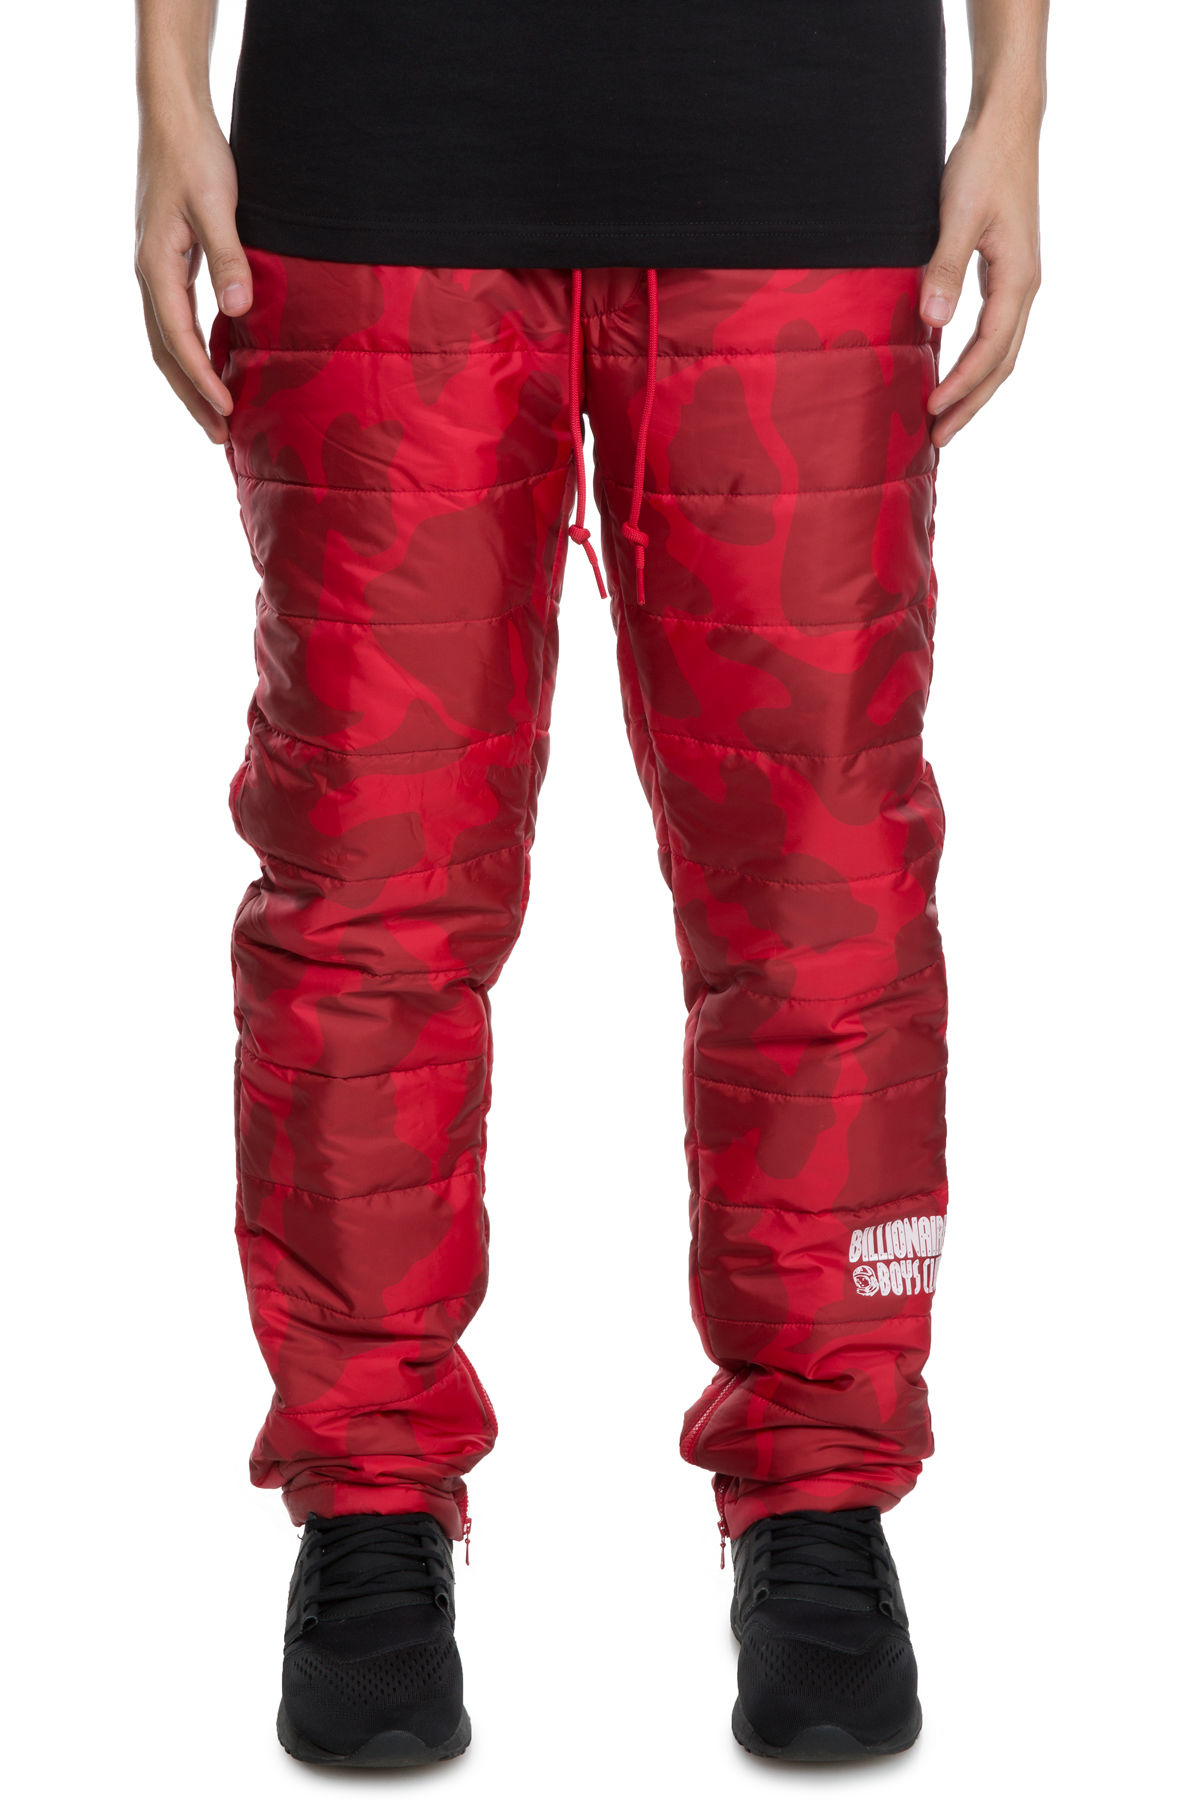 Image of The BB Legend Pants in Tango Red